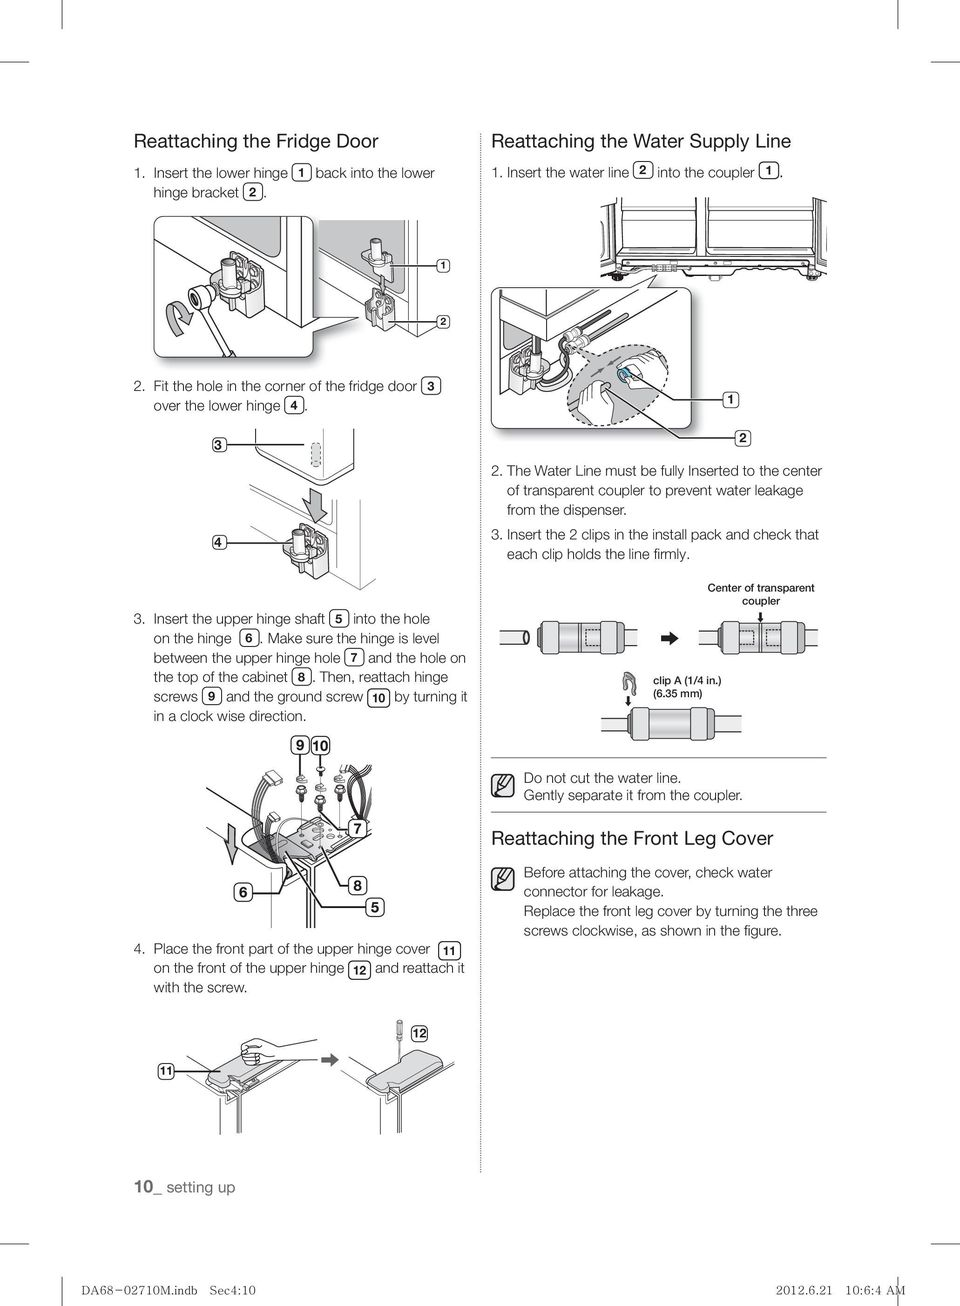 Make sure the hinge is level between the upper hinge hole 7 and the hole on the top of the cabinet 8. Then, reattach hinge screws 9 and the ground screw 10 by turning it in a clock wise direction. 2.